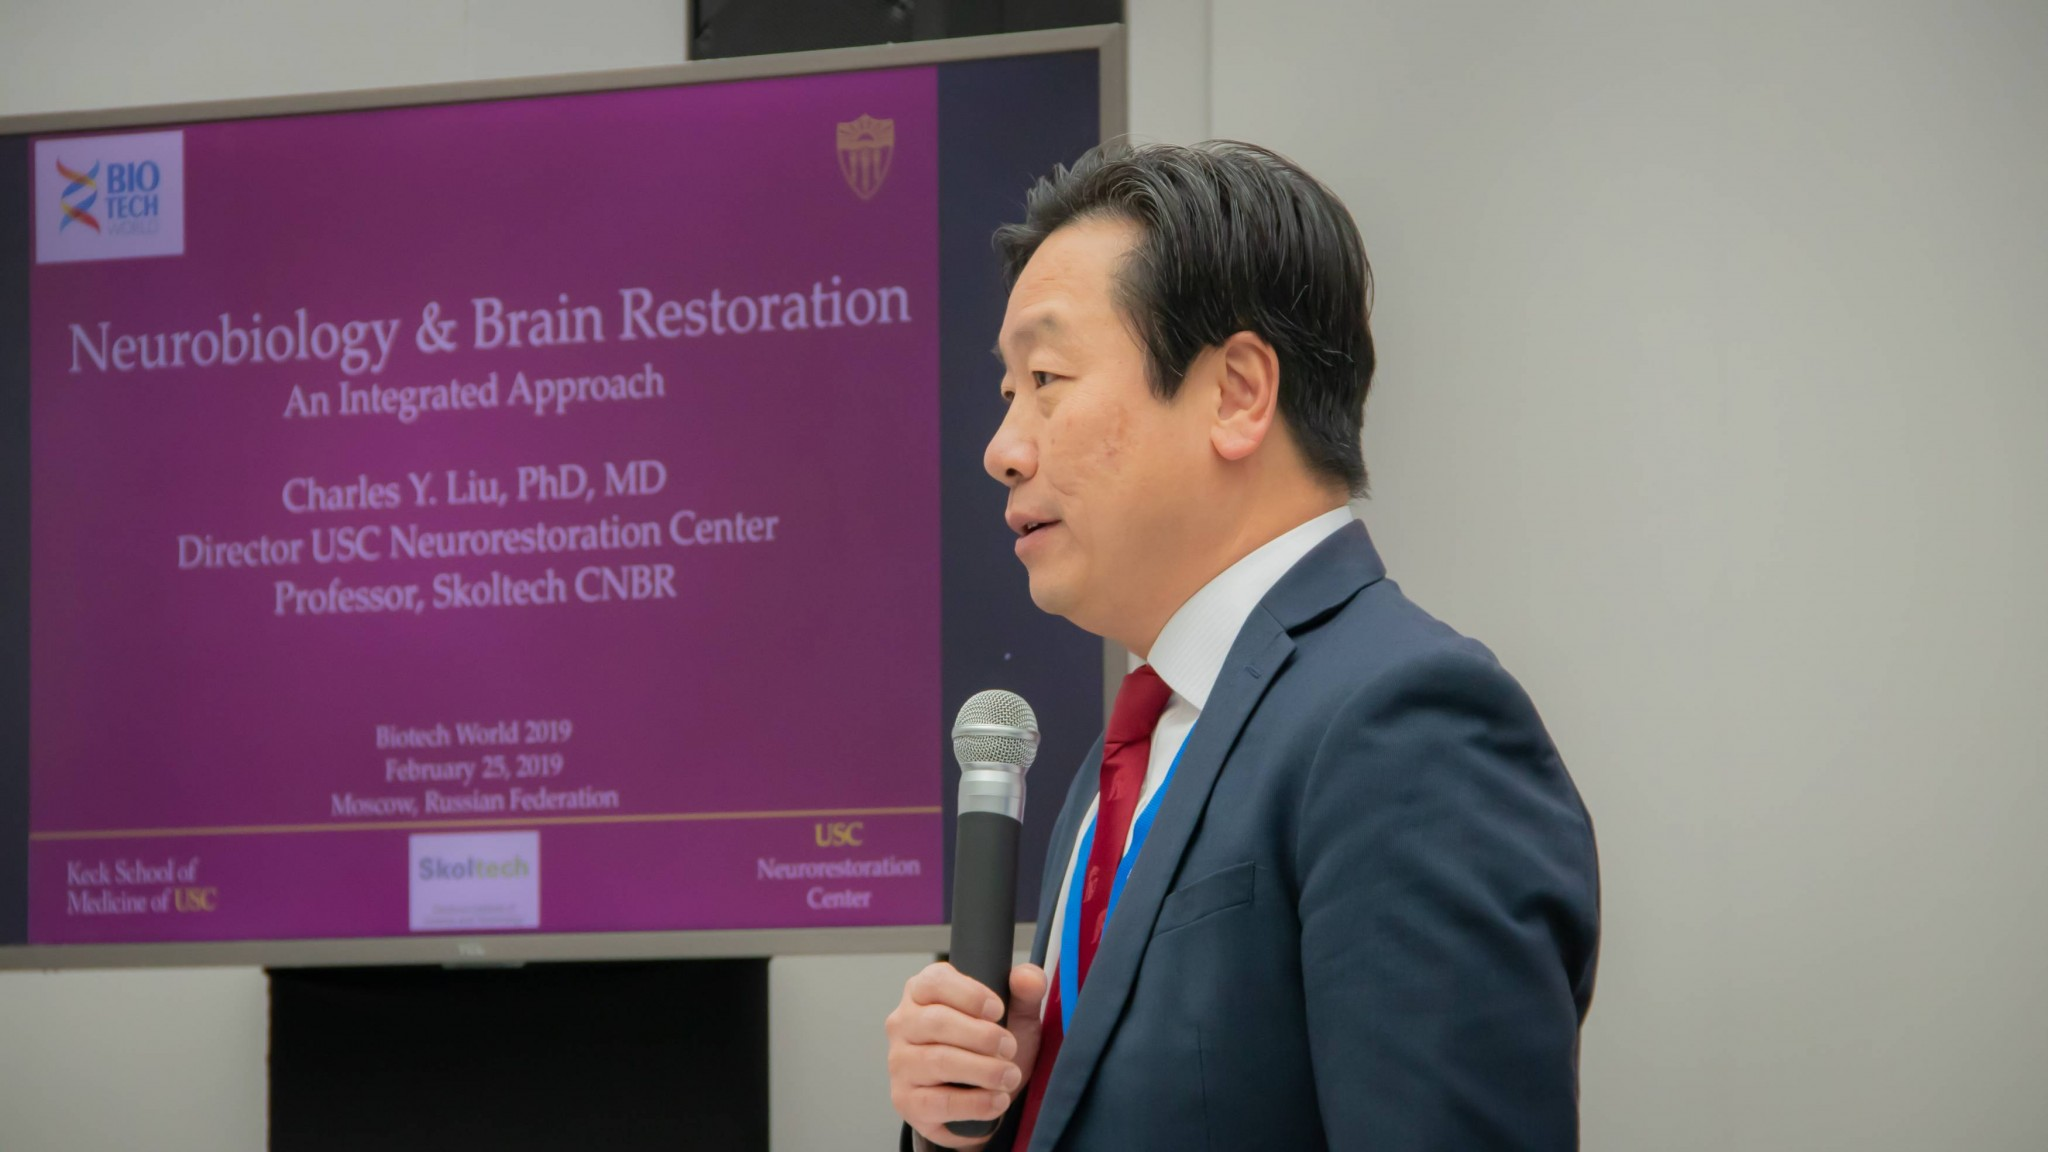 Image: Charles Liu (Director of USC Neuro-restoration Center)